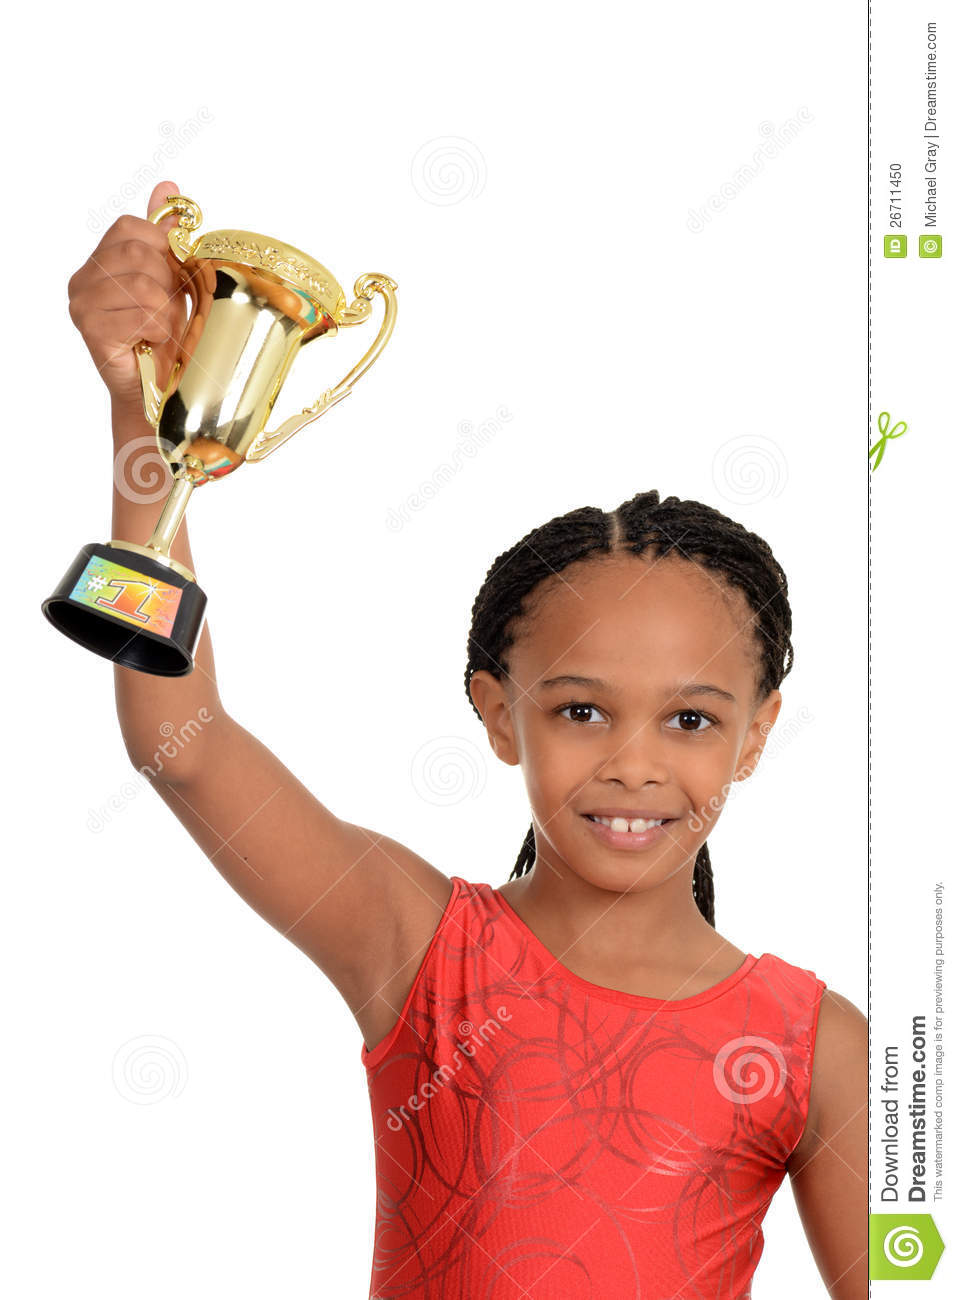 Young Black Teenage Men Playing Video Games: Young Black Child With Gymnastics Trophy Stock Photo